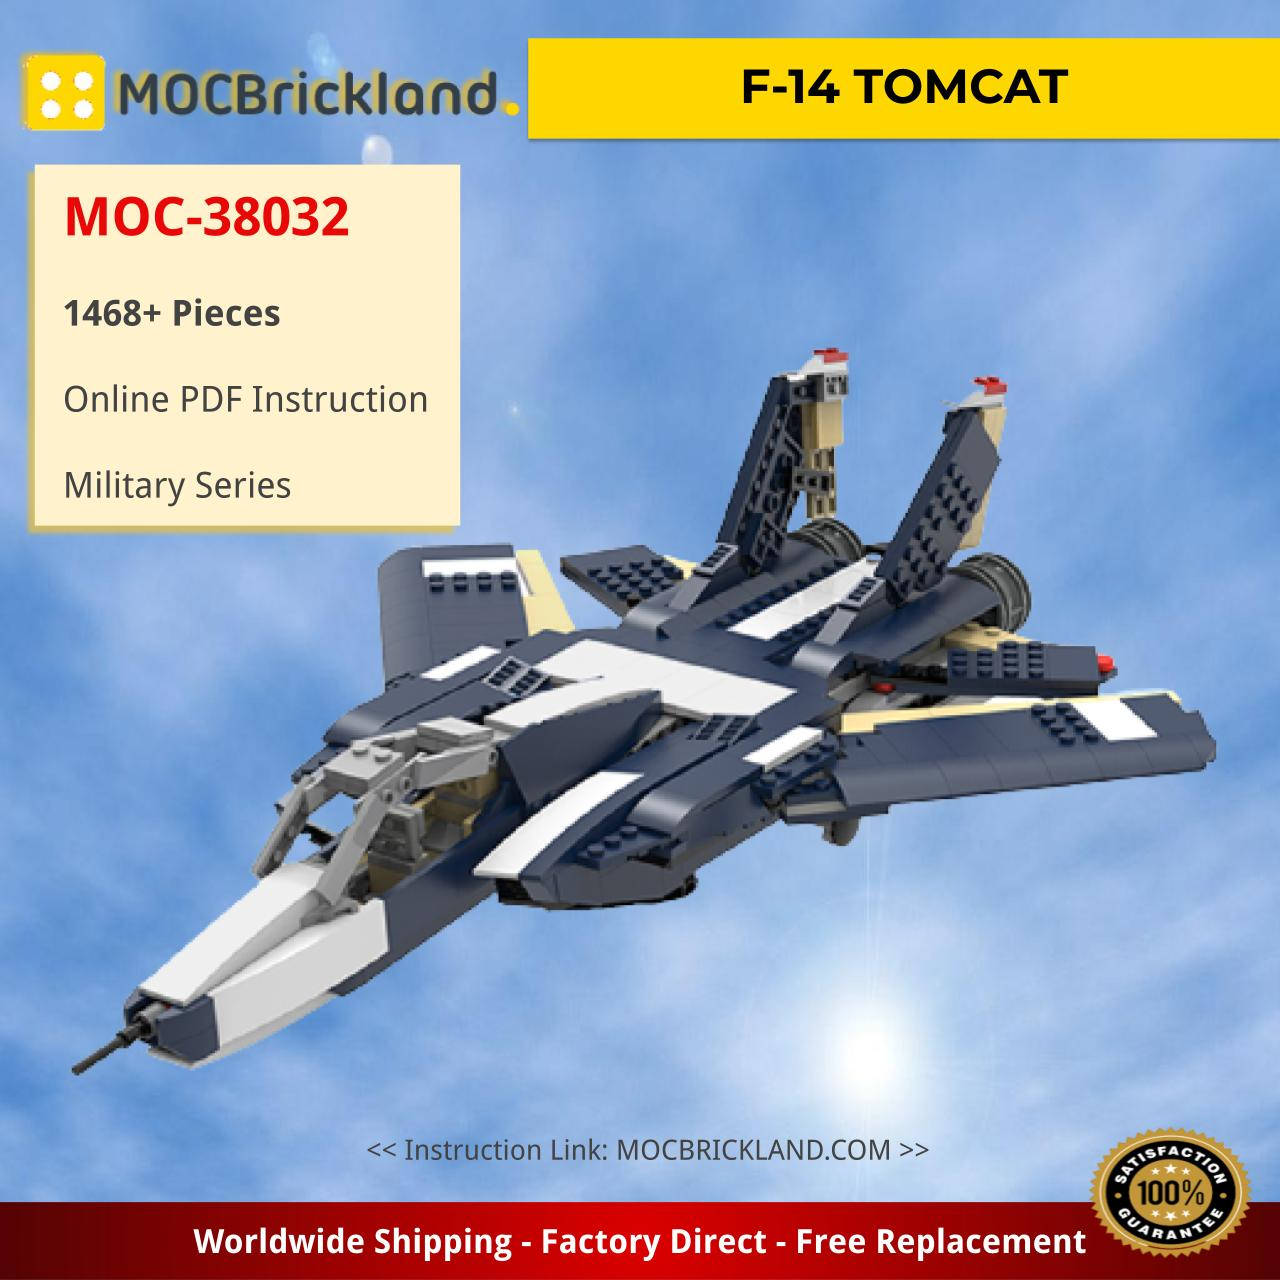 F-14 TOMCAT Military MOC-38032 by ale0794 WITH 1468 PIECES